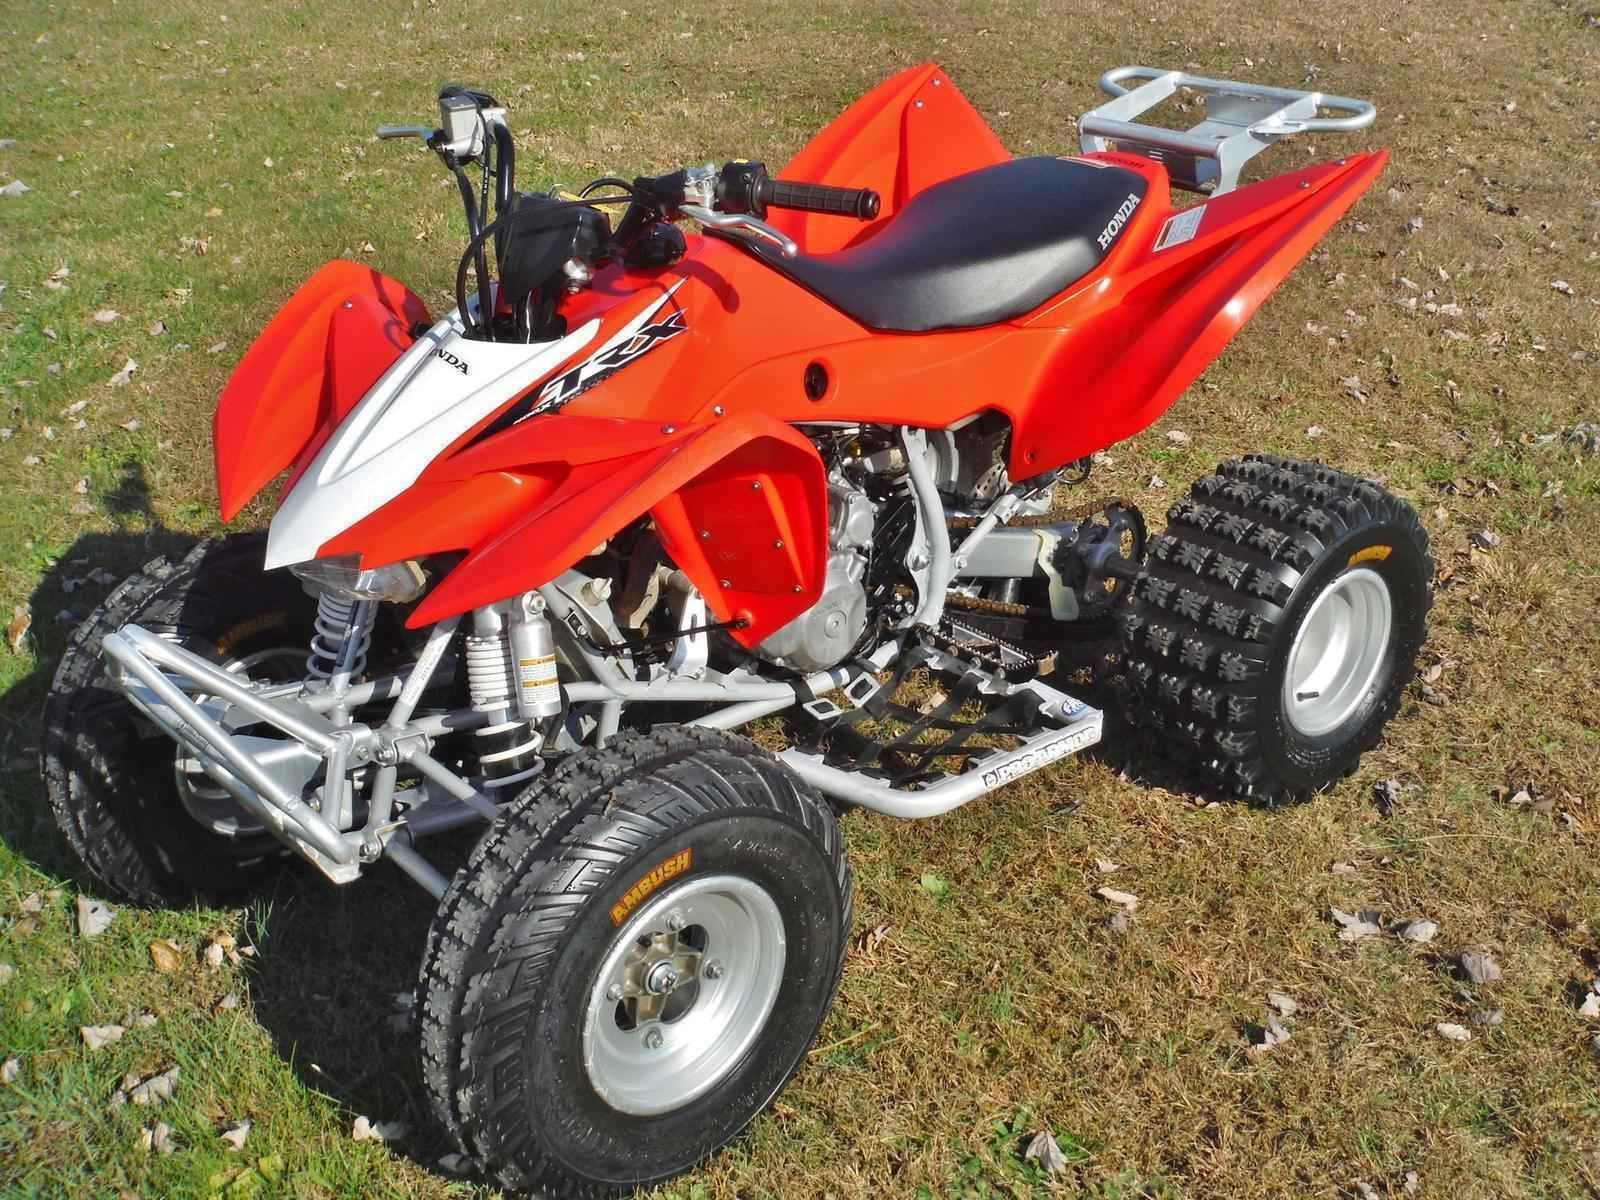 Used 2014 Honda Trx400x Atvs For Sale In Ohio 2014 Honda Trx400x